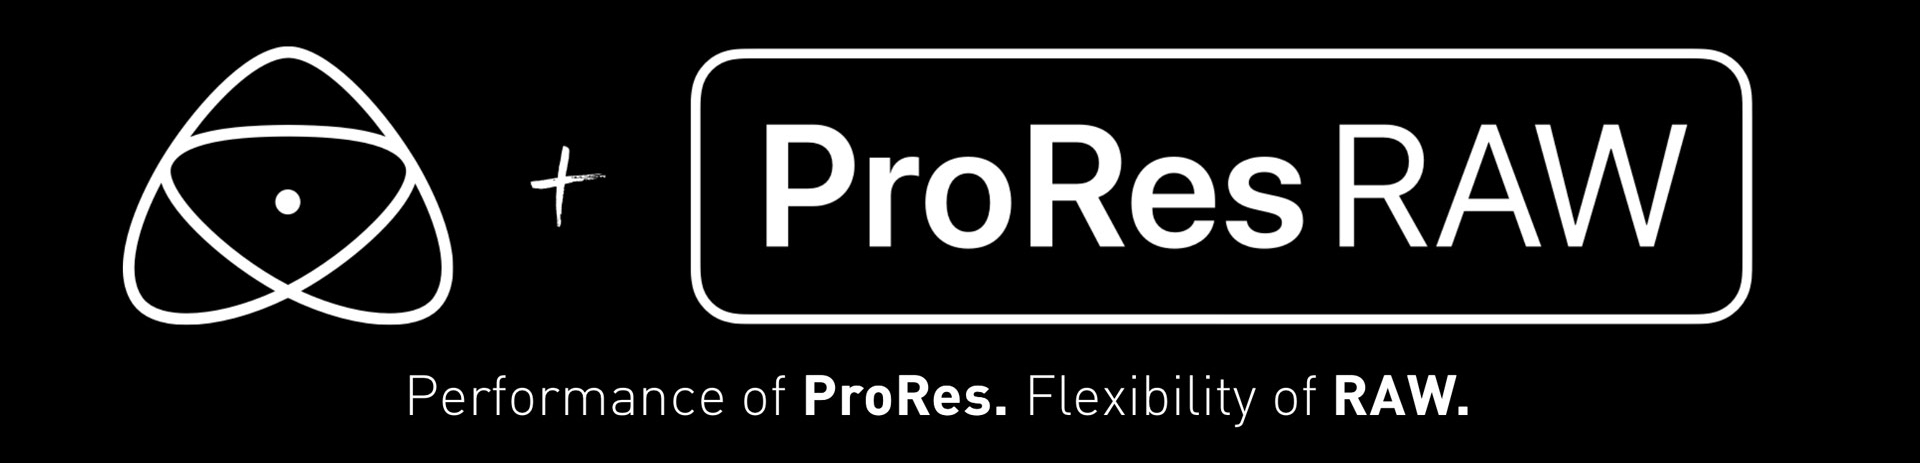 ProRes RAW vs Blackmagic RAW - Interview with Atomos CEO Jeromy